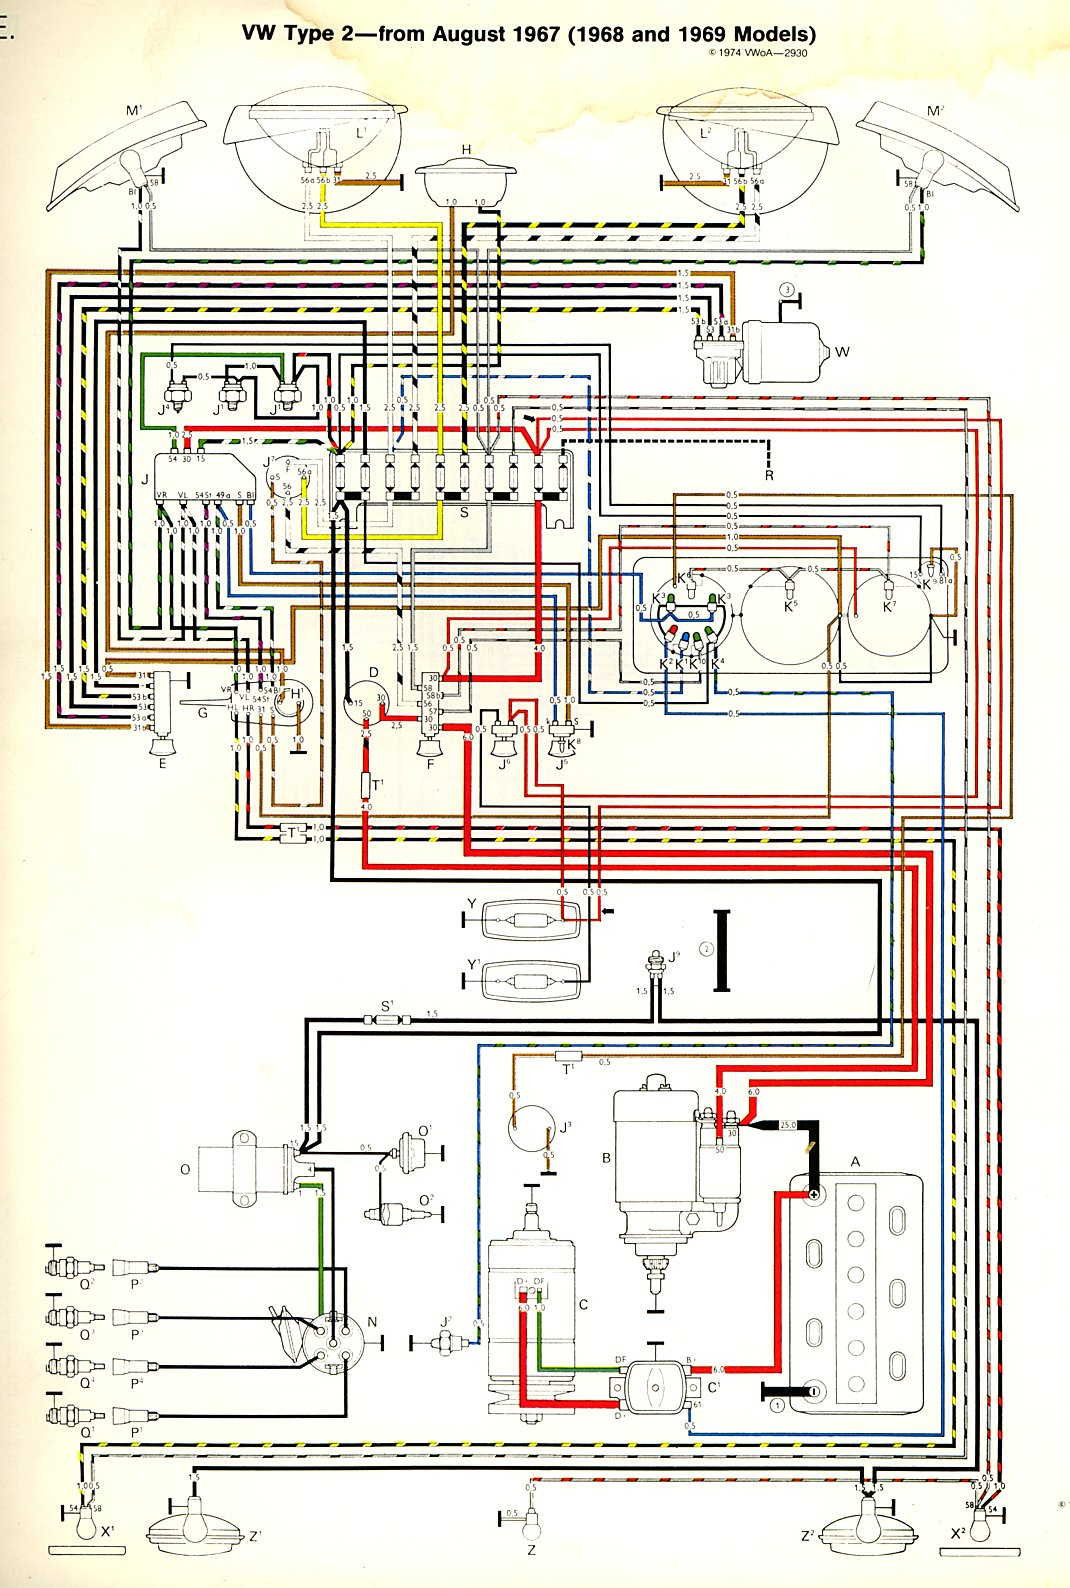 baybus_6869a 1968 69 bus wiring diagram thegoldenbug com 1971 vw bus wiring diagram at love-stories.co